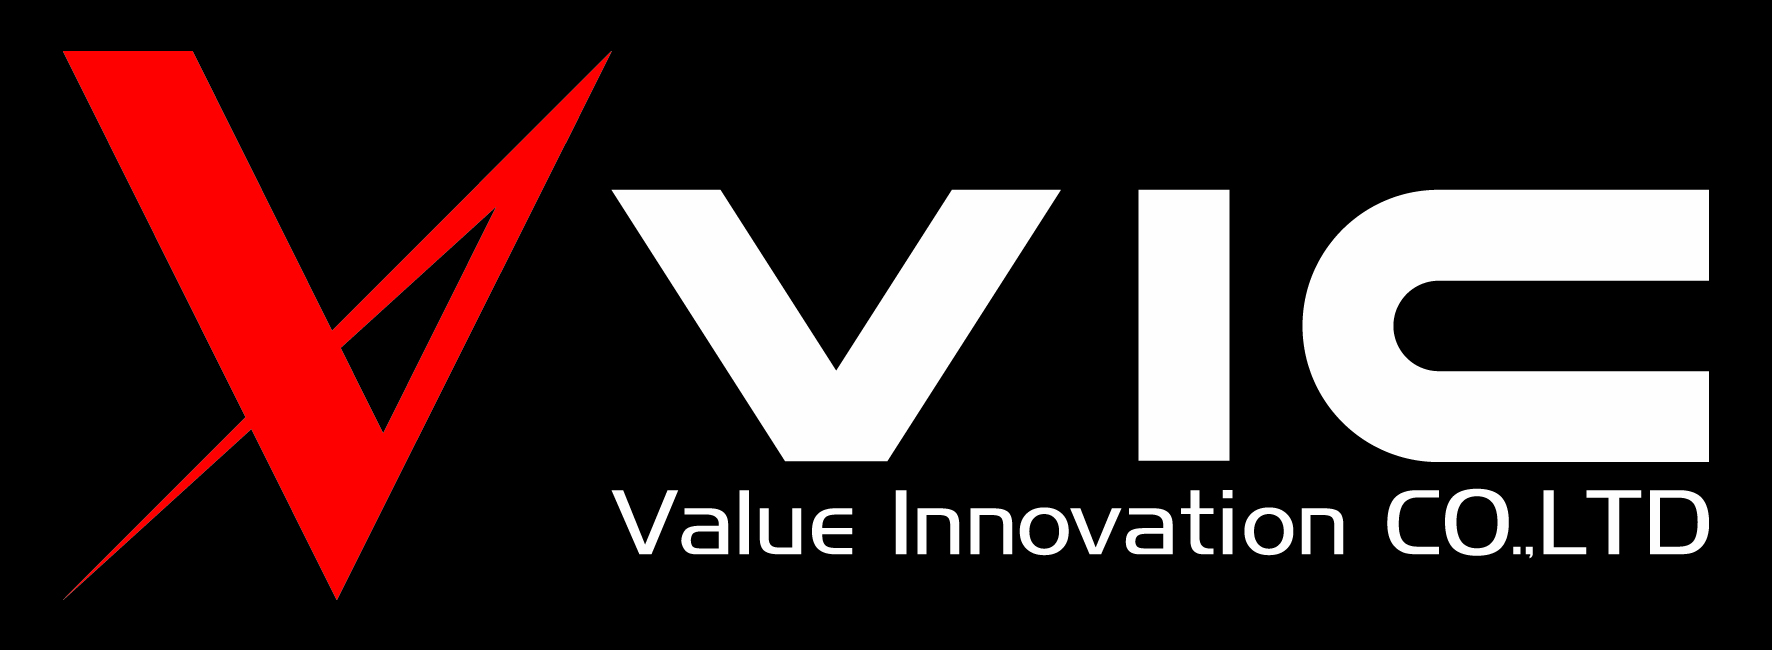 Value Innovation CO., LTD. (Japan)